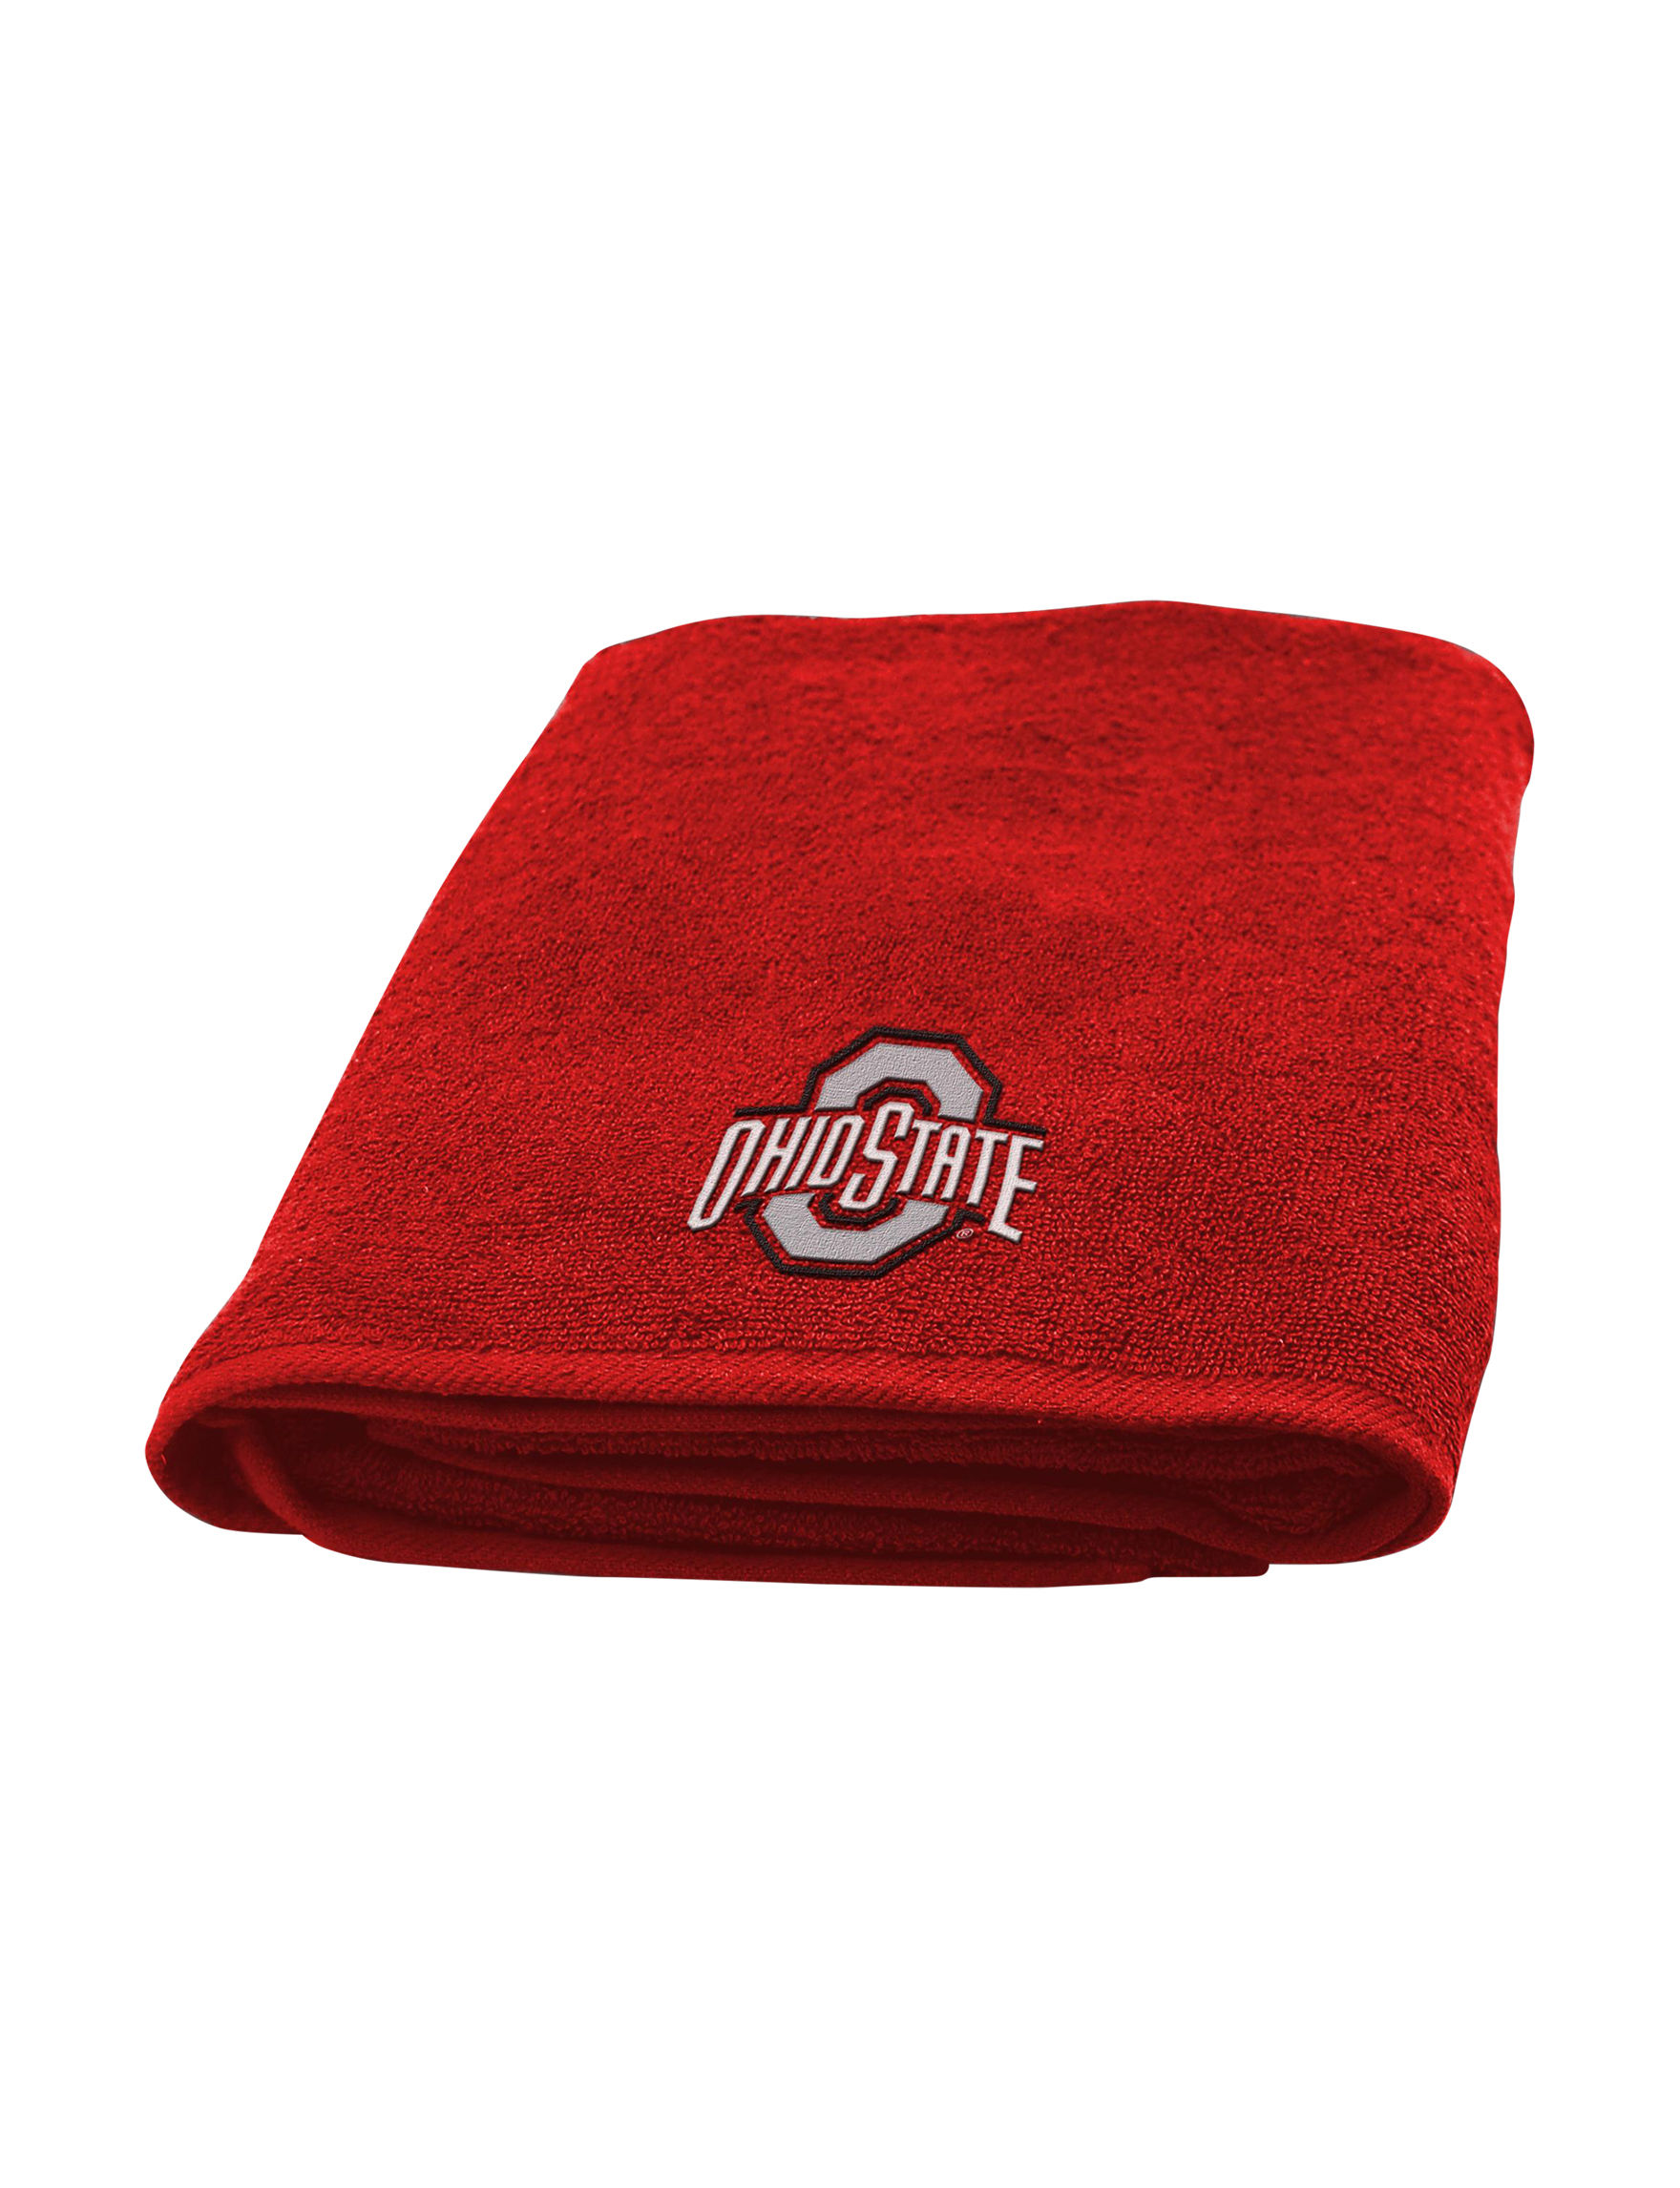 The Northwest Company Multi Bath Towels Towels